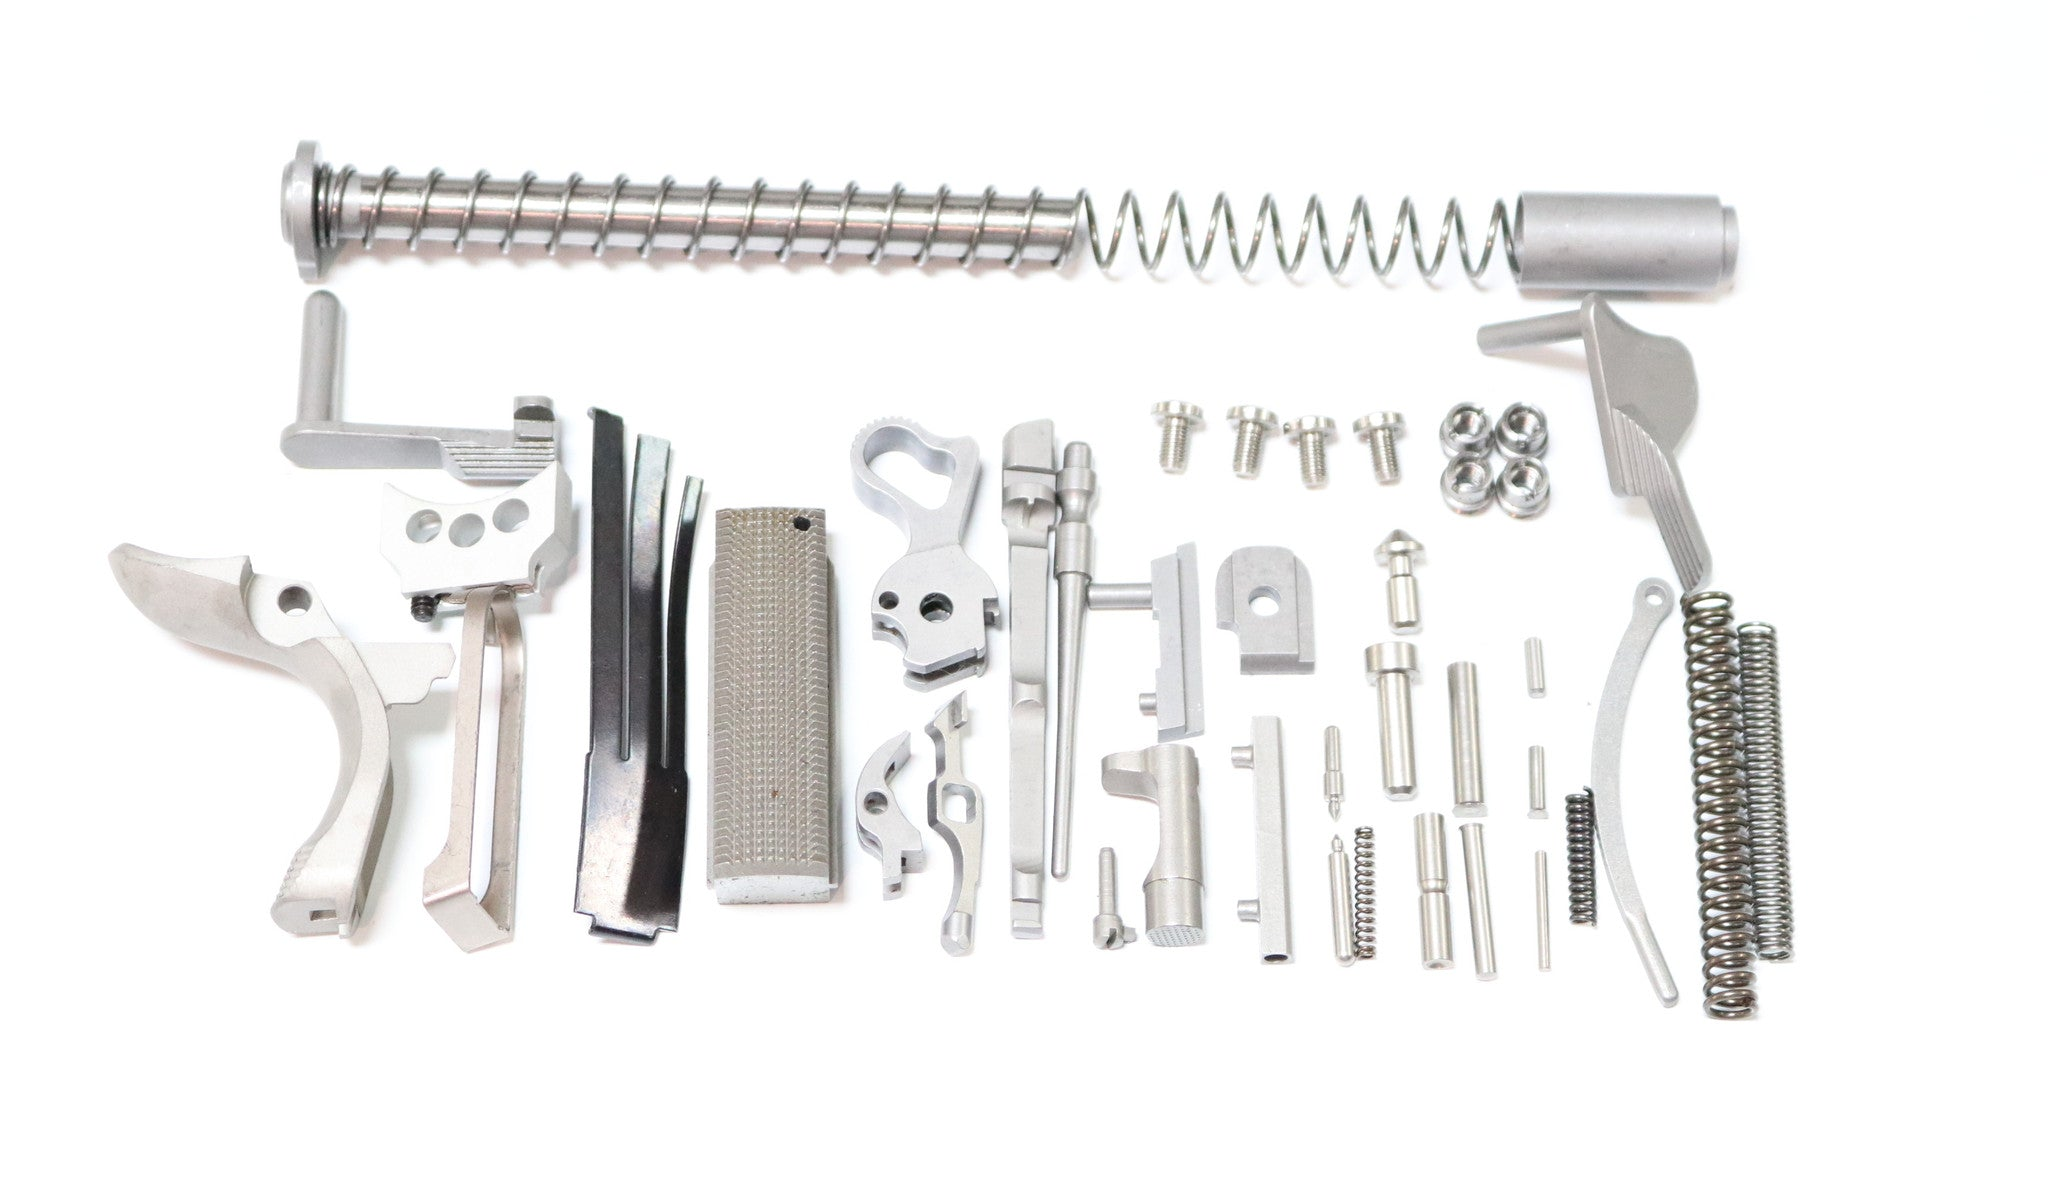 1911 FULL SIZE COMPLETE SMALL PARTS KIT 45 or 9 BILLET 416 STAINLESS ...